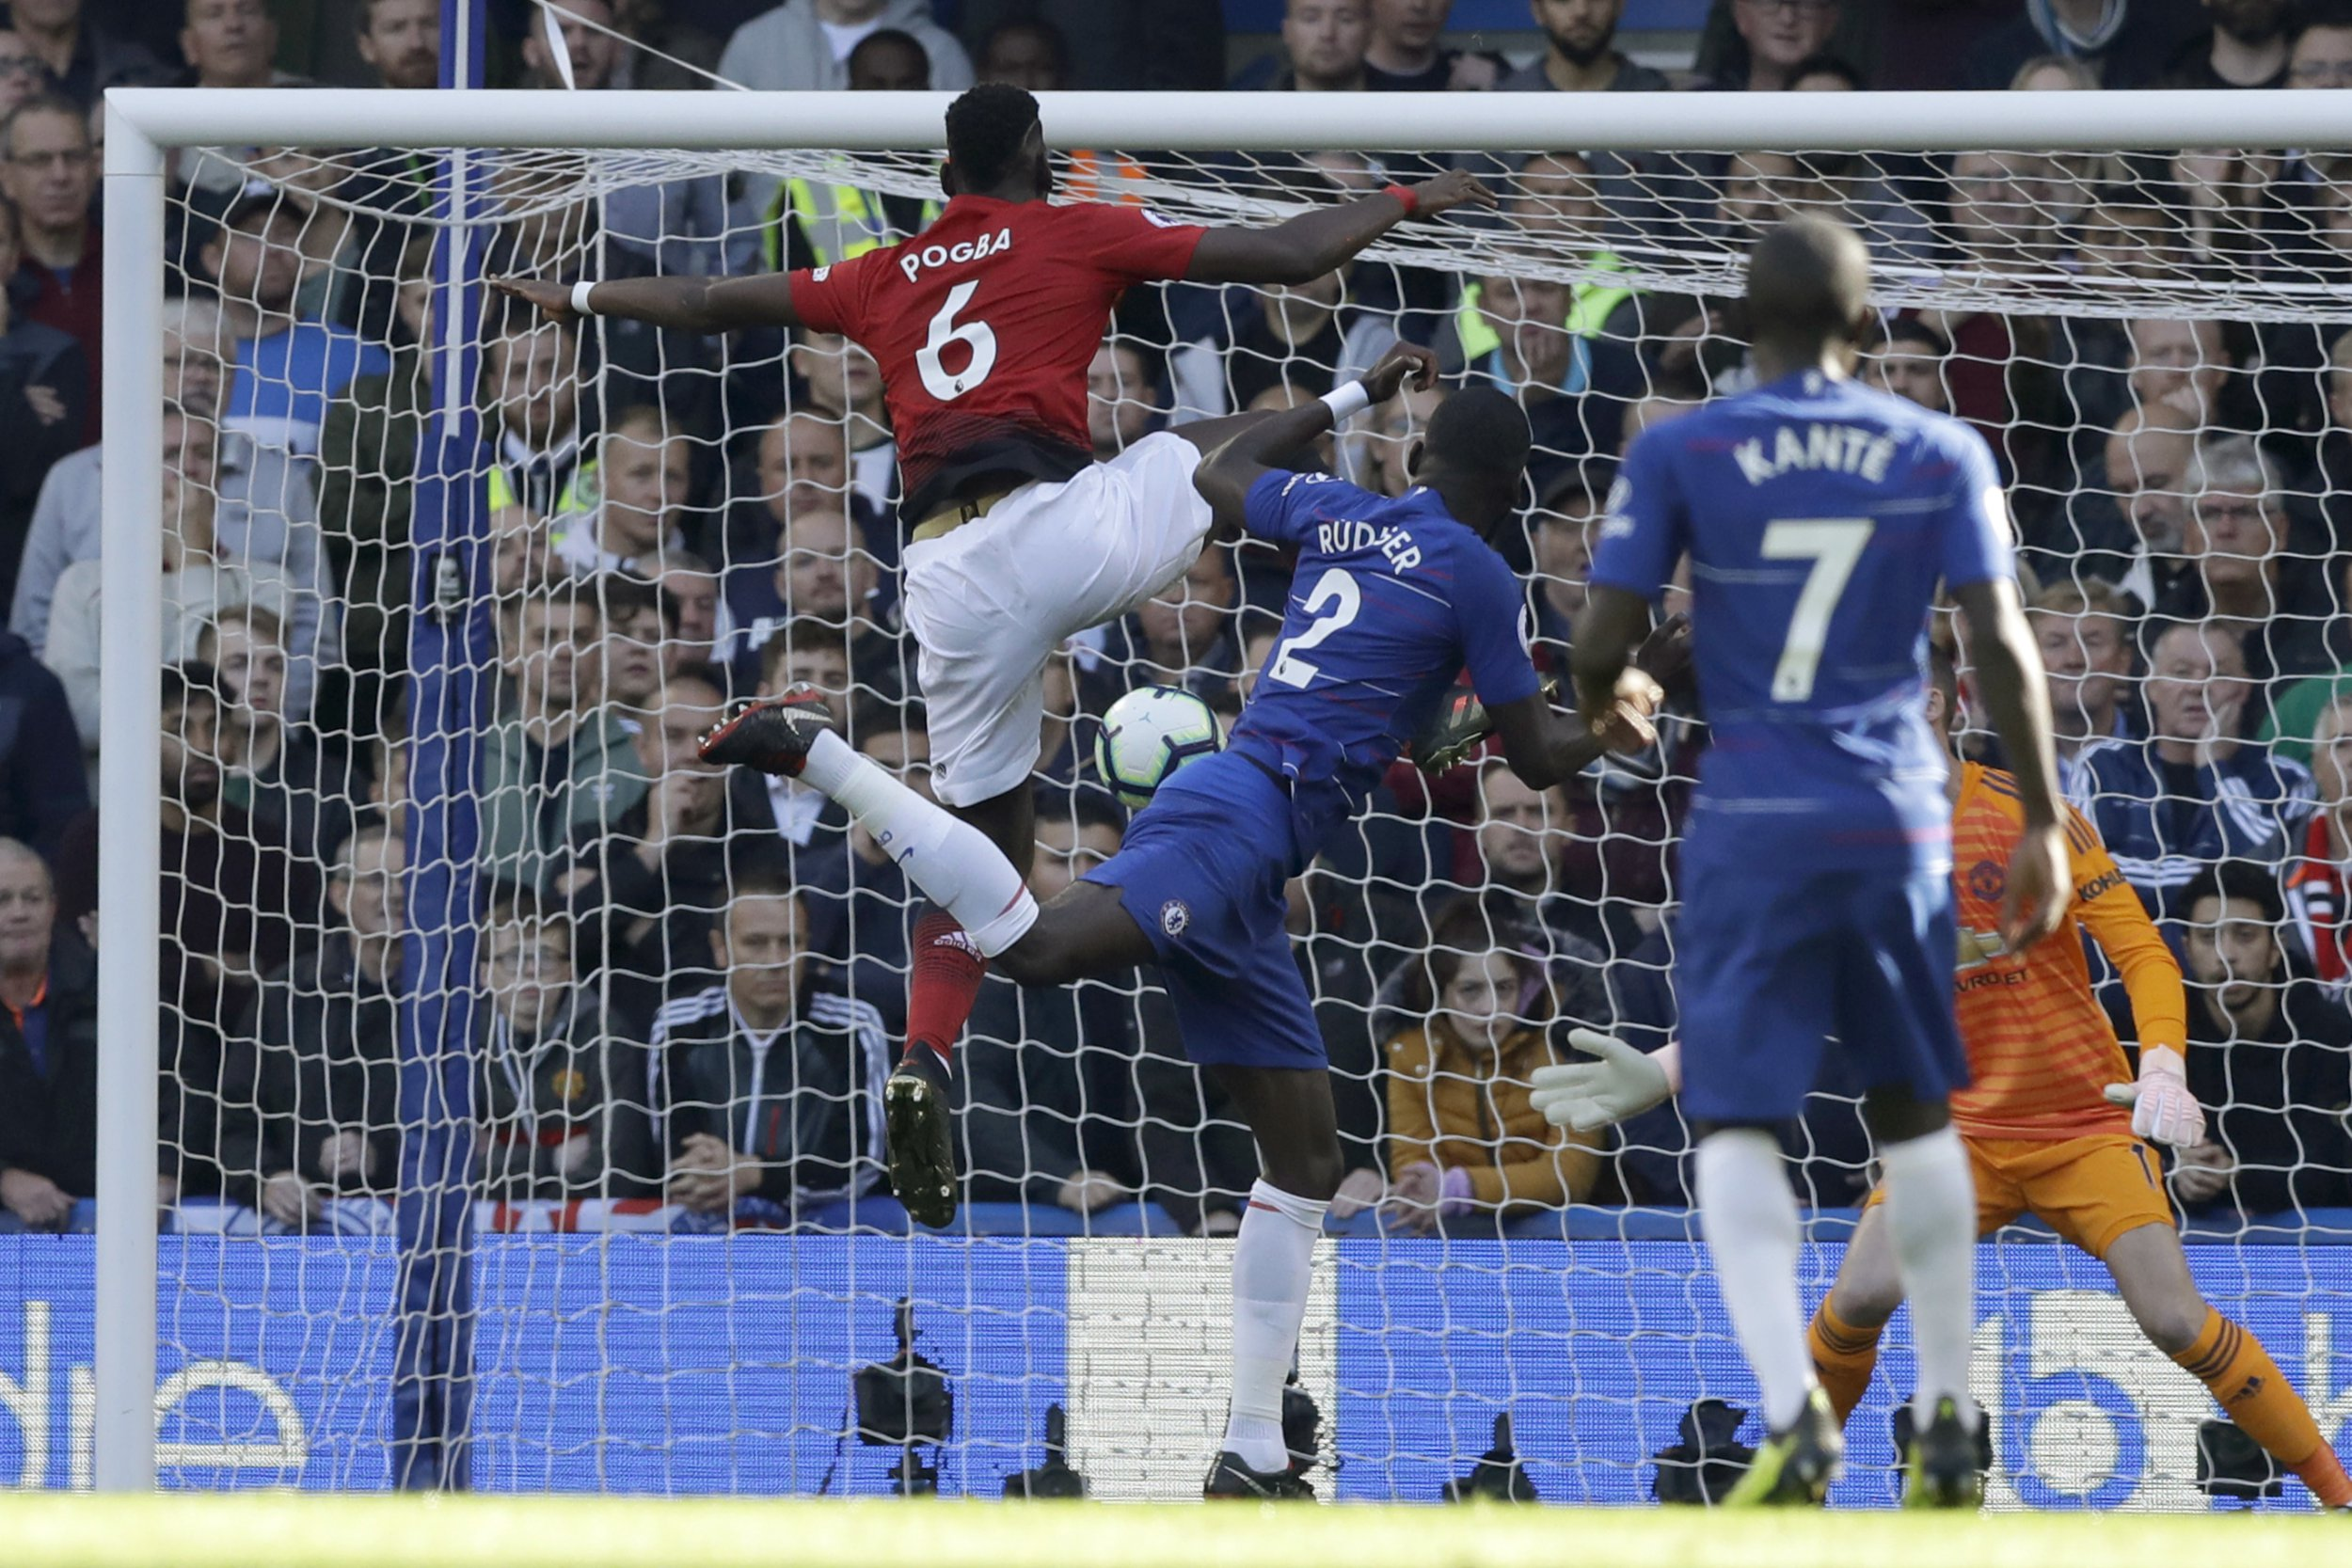 Chelsea's Antonio Ruediger, center, head the ball next to ManU midfielder Paul Pogba, left, to score his side's first goal during their English Premier League soccer match between Chelsea and Manchester United at Stamford Bridge stadium in London Saturday, Oct. 20, 2018. (AP Photo/Matt Dunham)